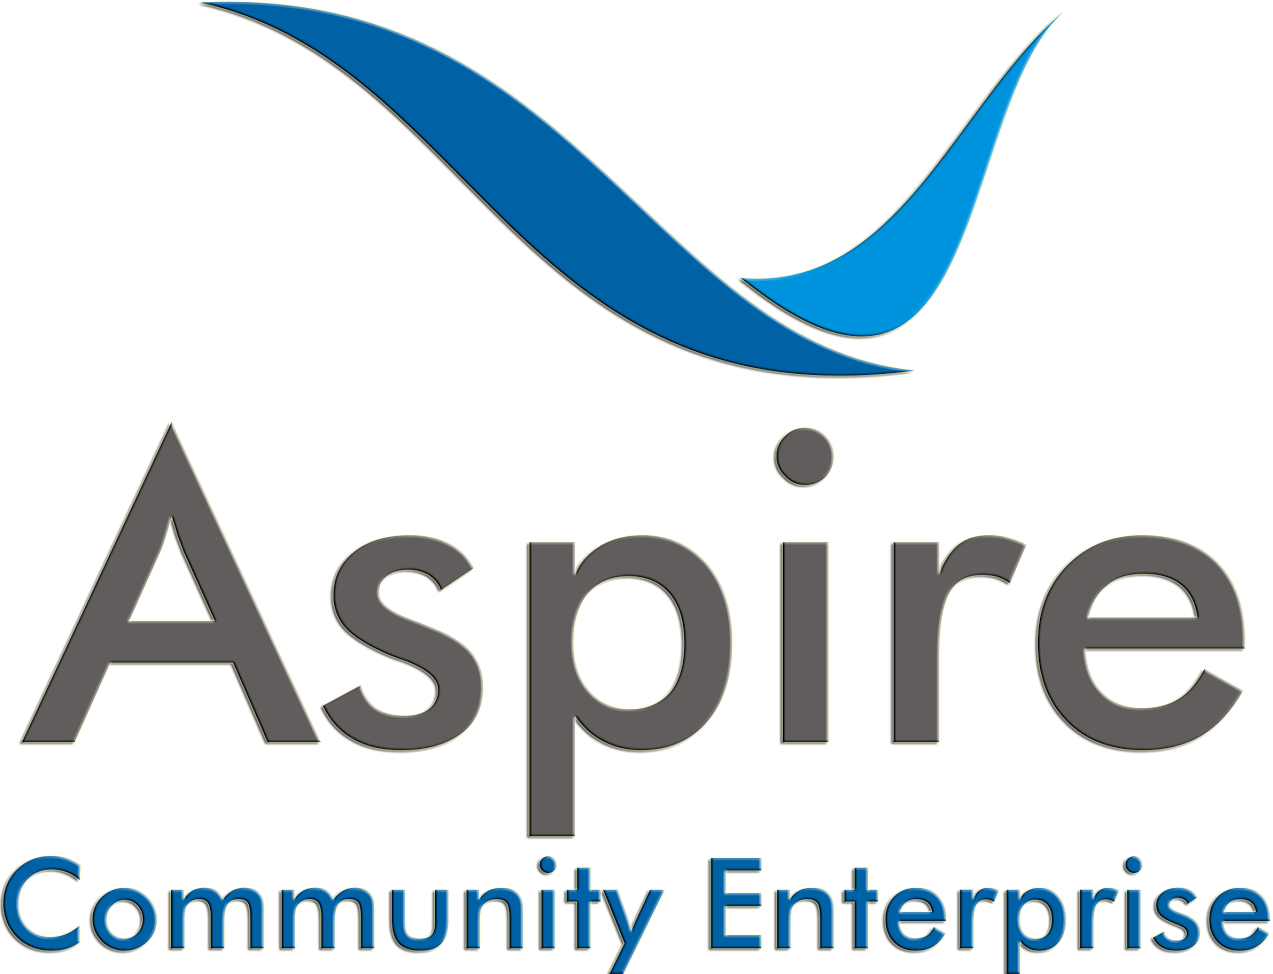 Aspire Community Enterprise Sheffield